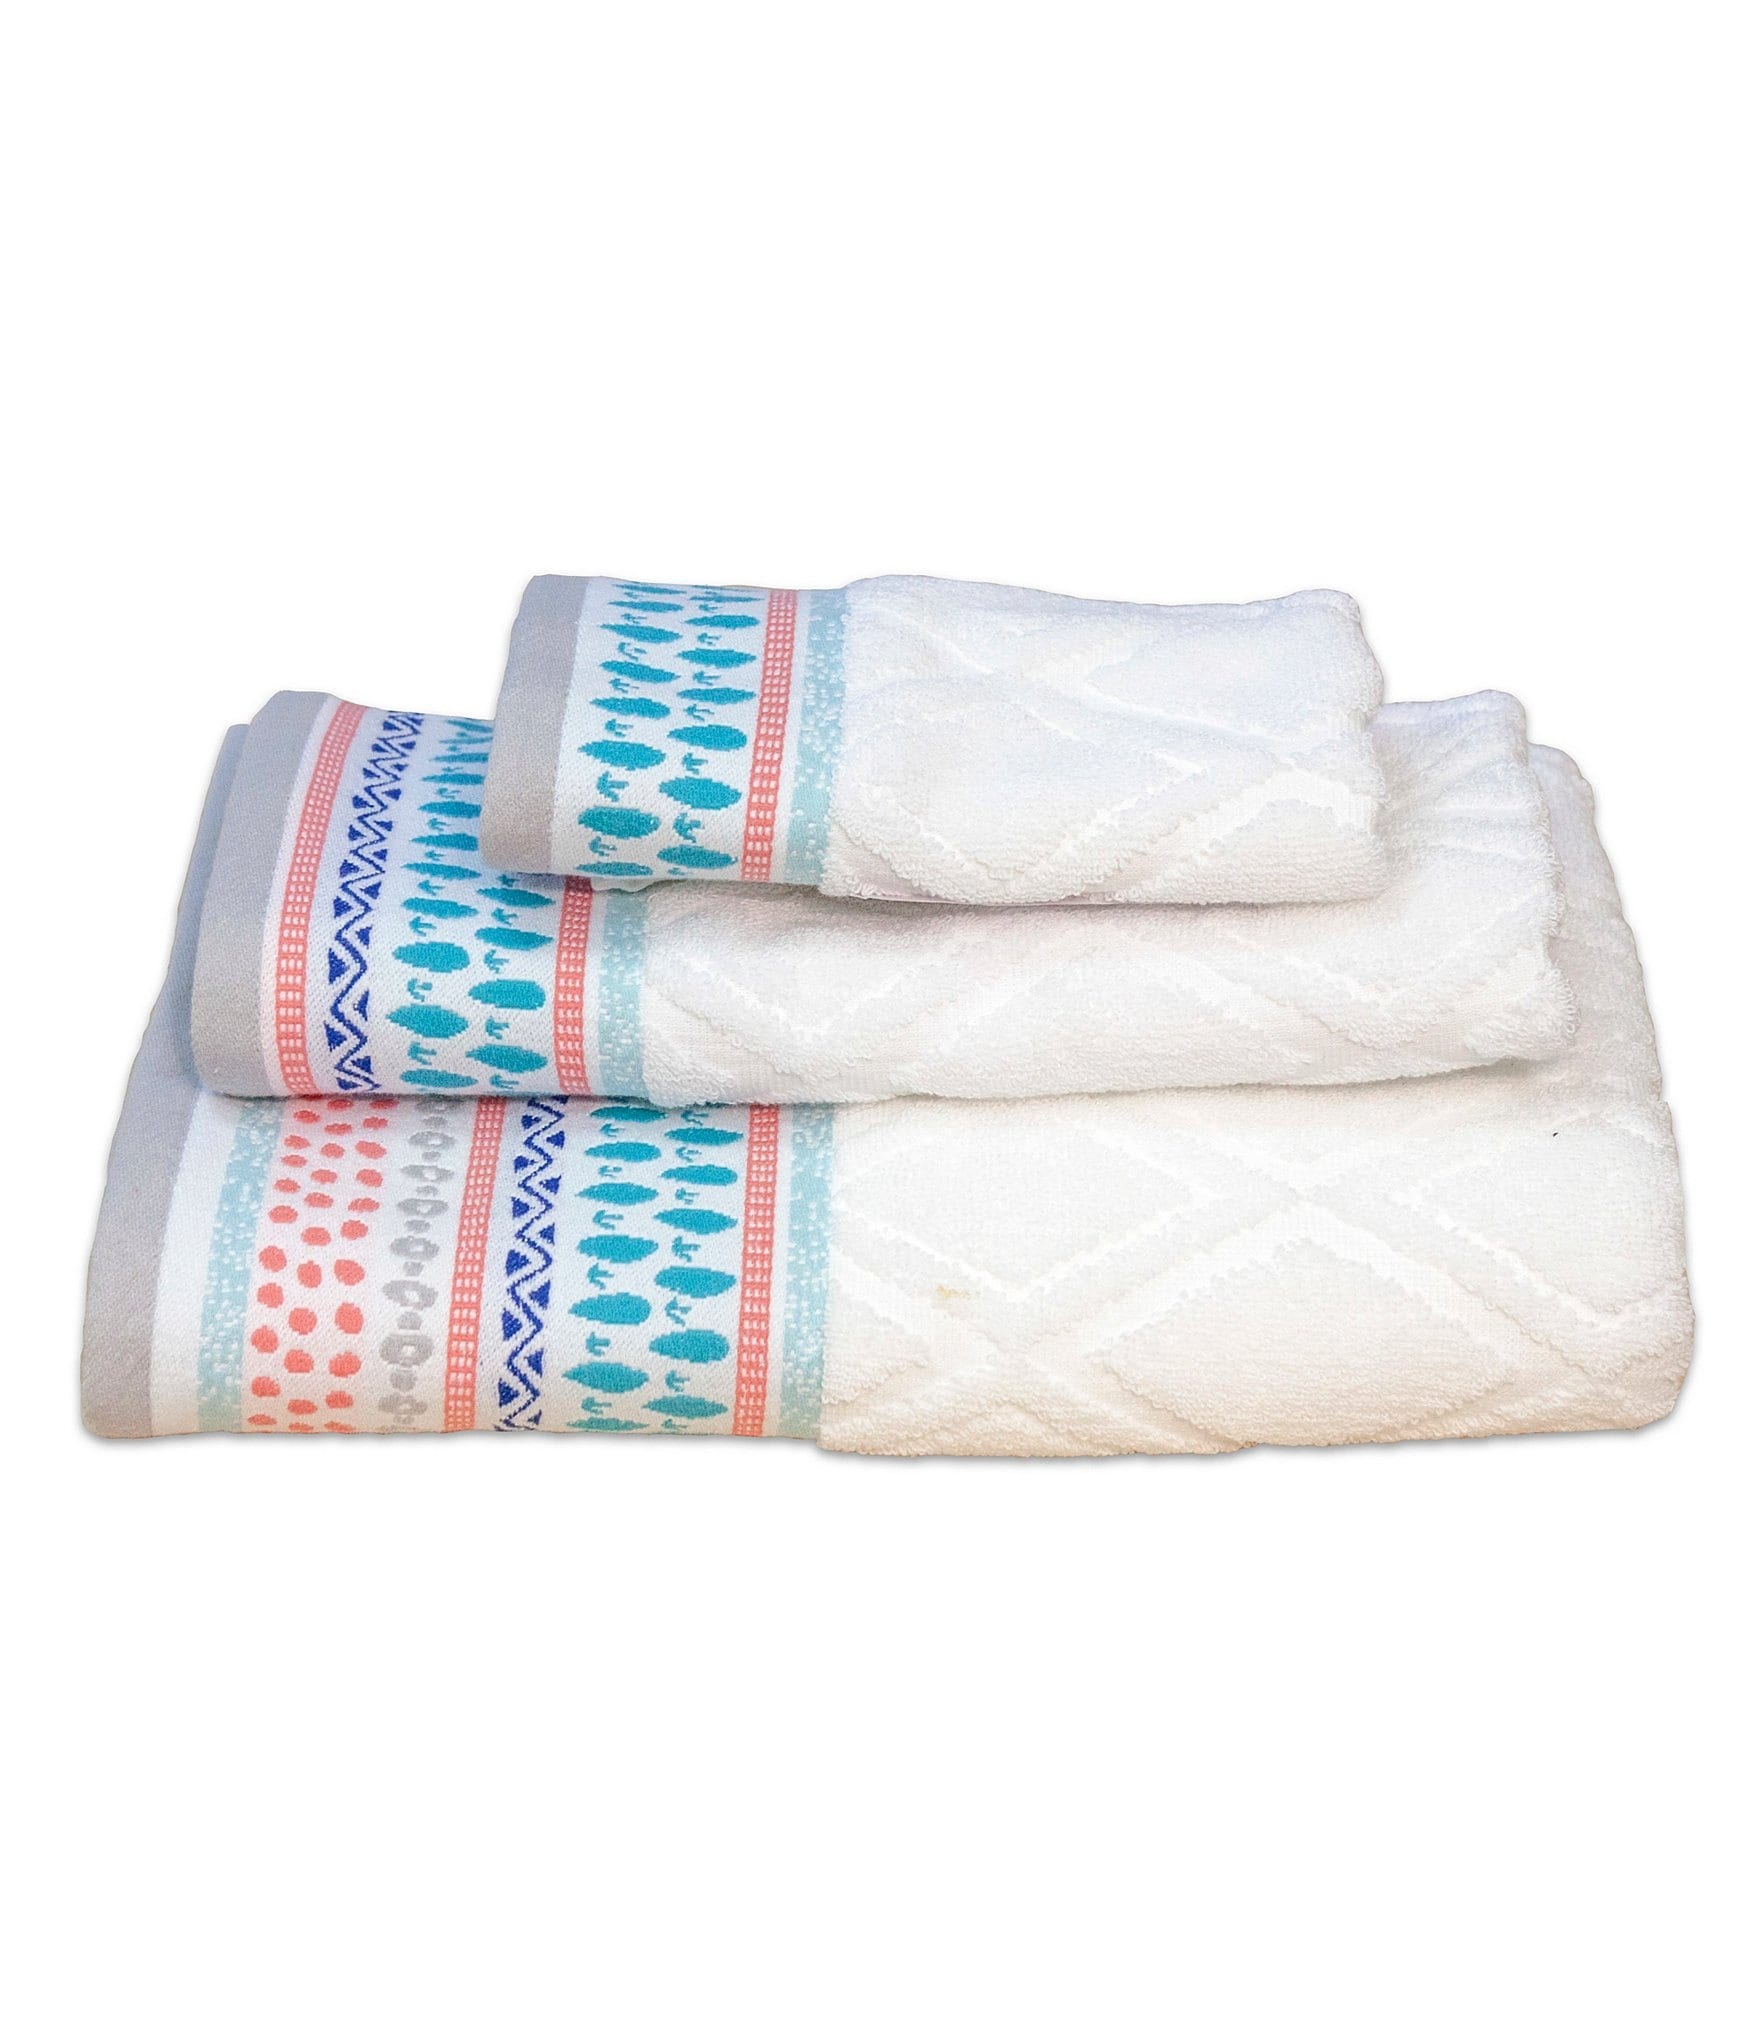 Home Bath Personal Care Bath Towels Dillardscom